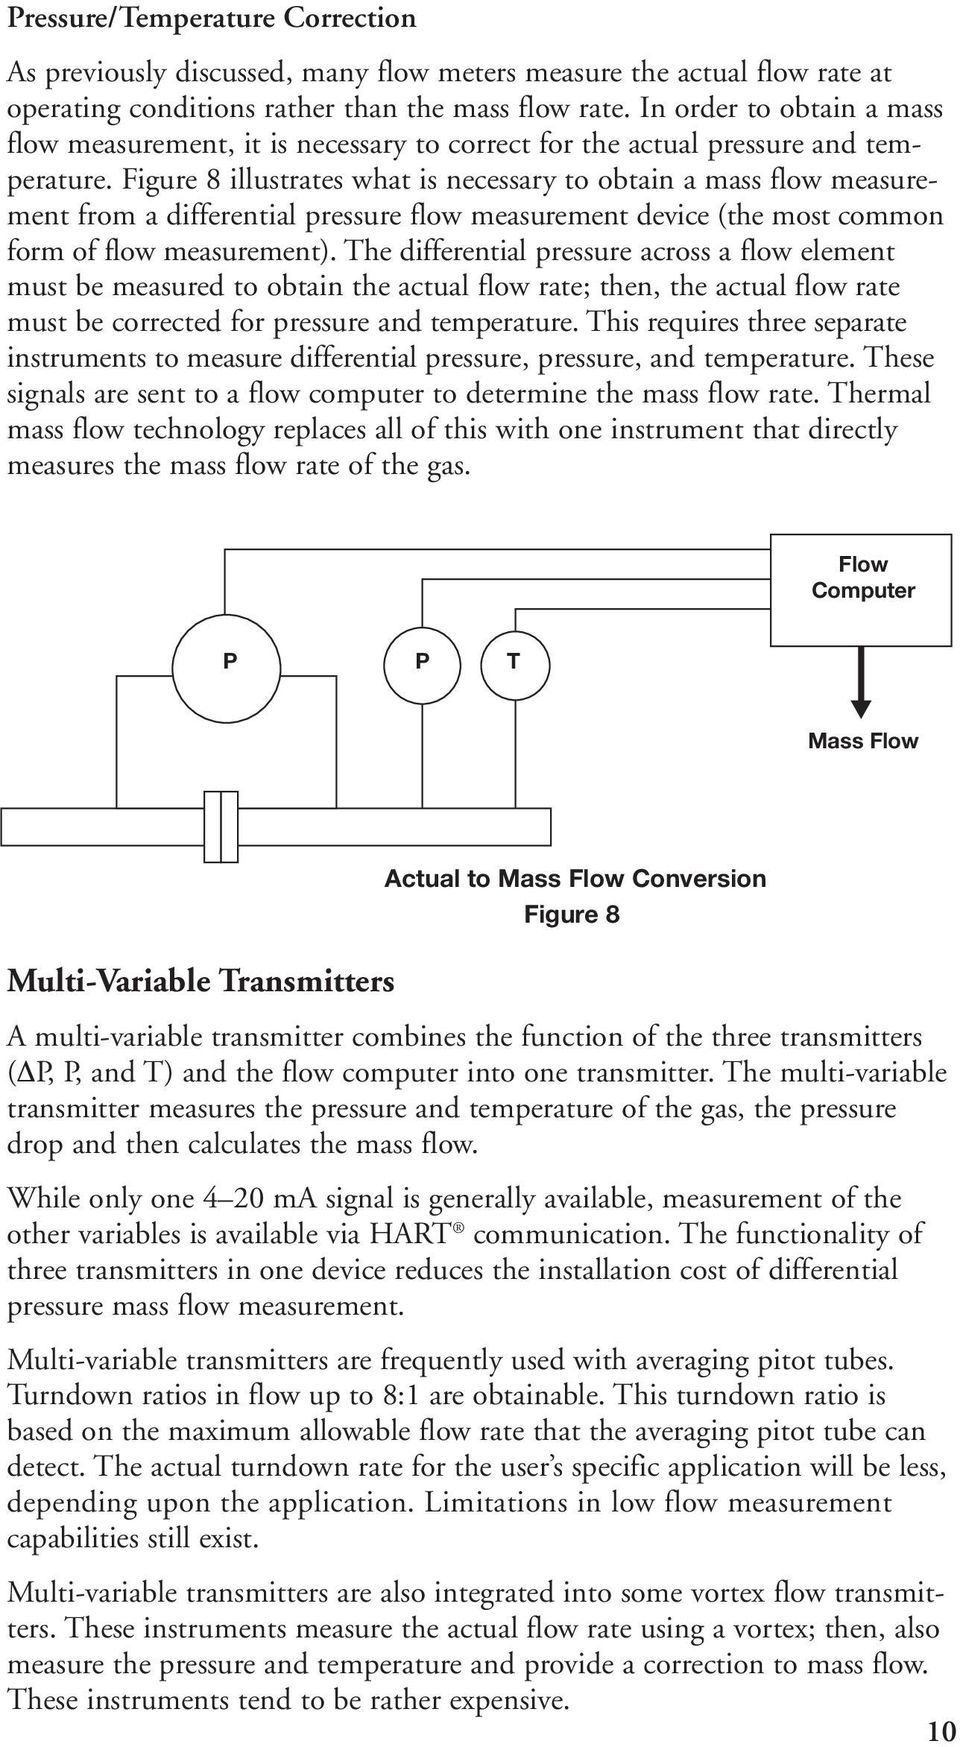 Figure 8 illustrates what is necessary to obtain a mass flow measurement from a differential pressure flow measurement device (the most common form of flow measurement).